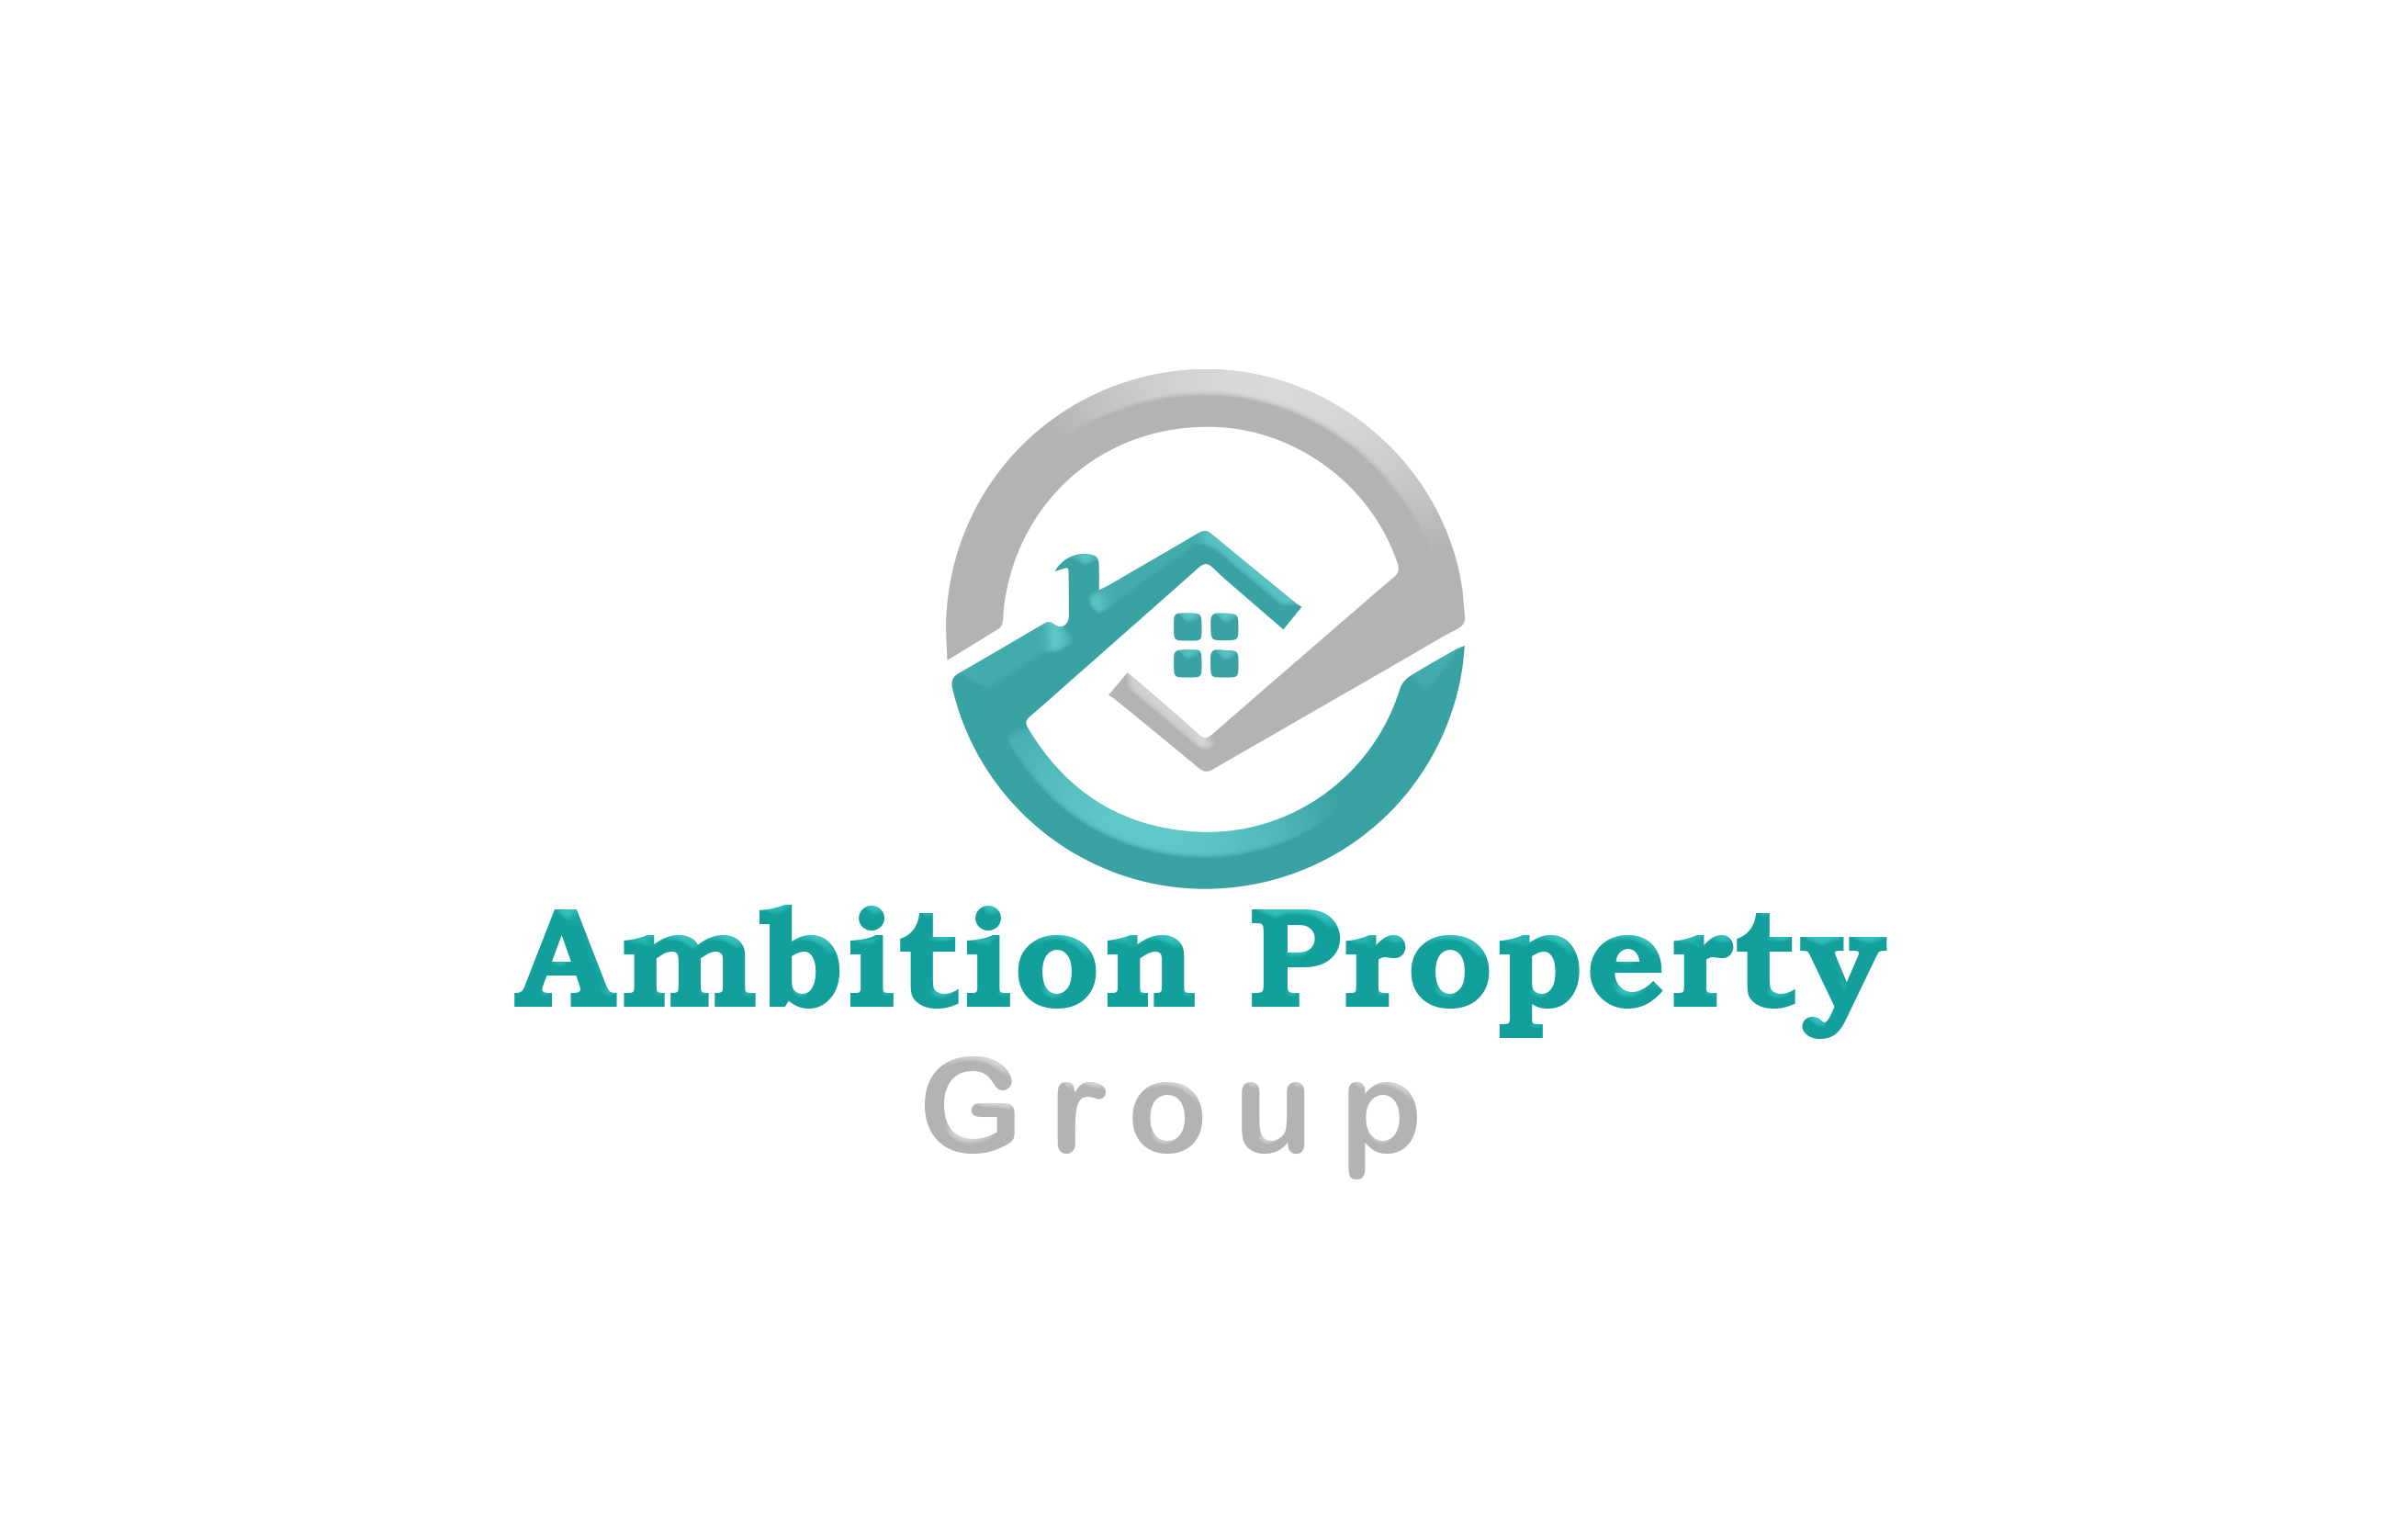 http://www.ambitionpropertygroup.co.uk/